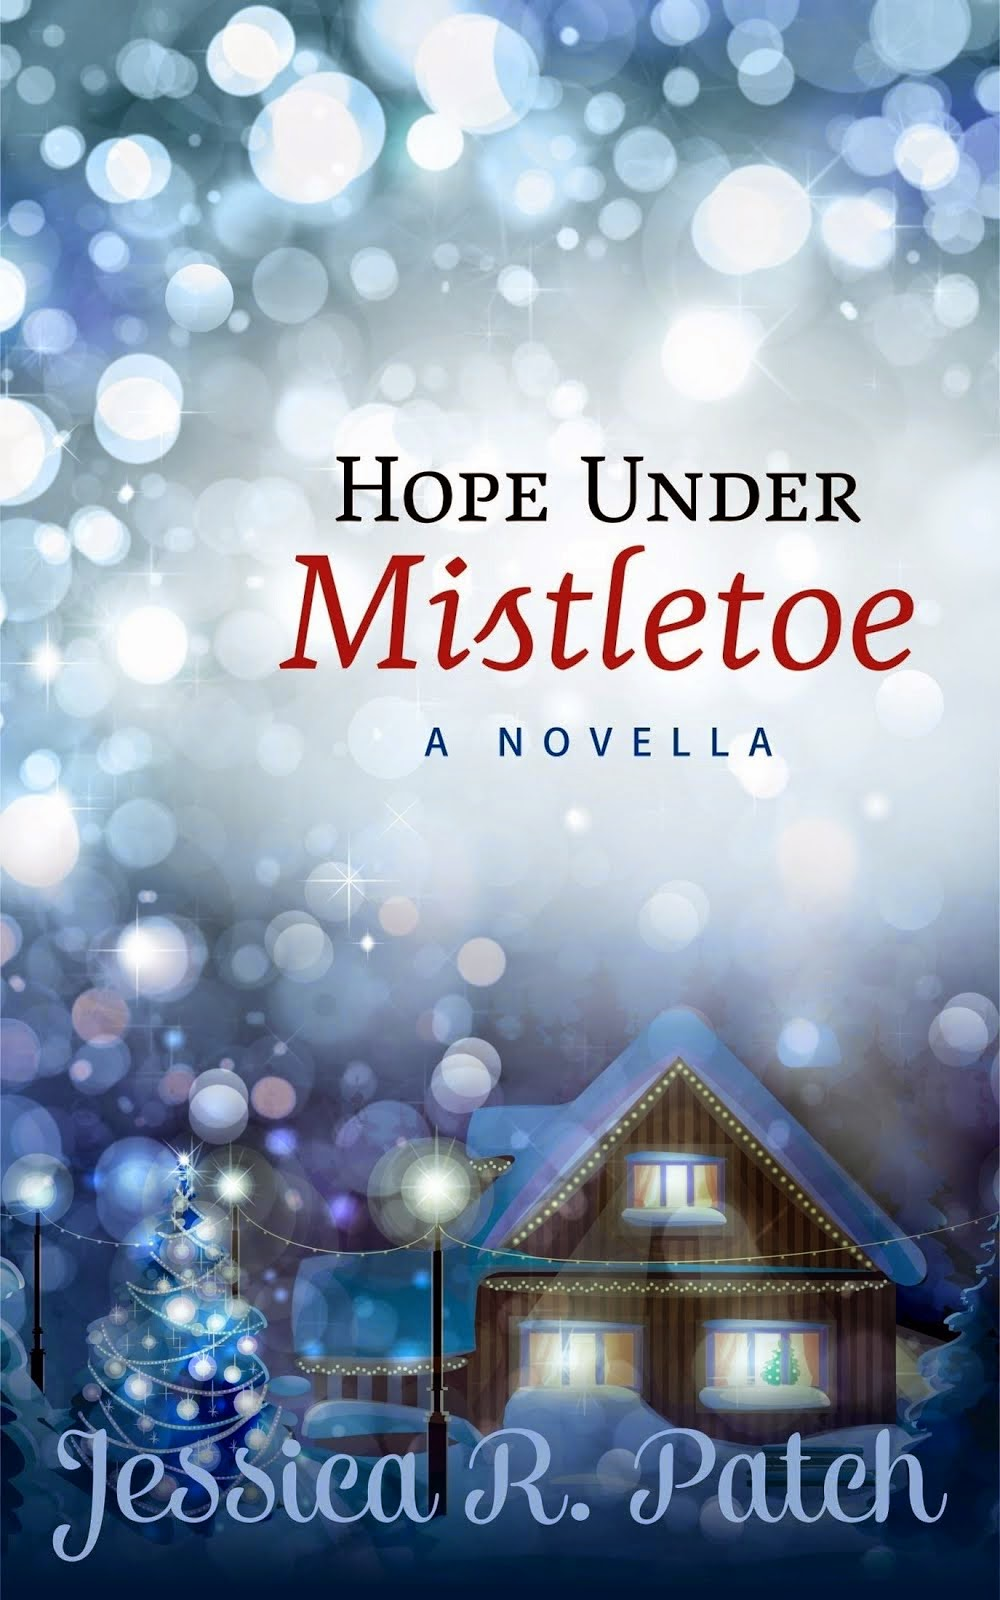 Love Christmas Stories? Me too!